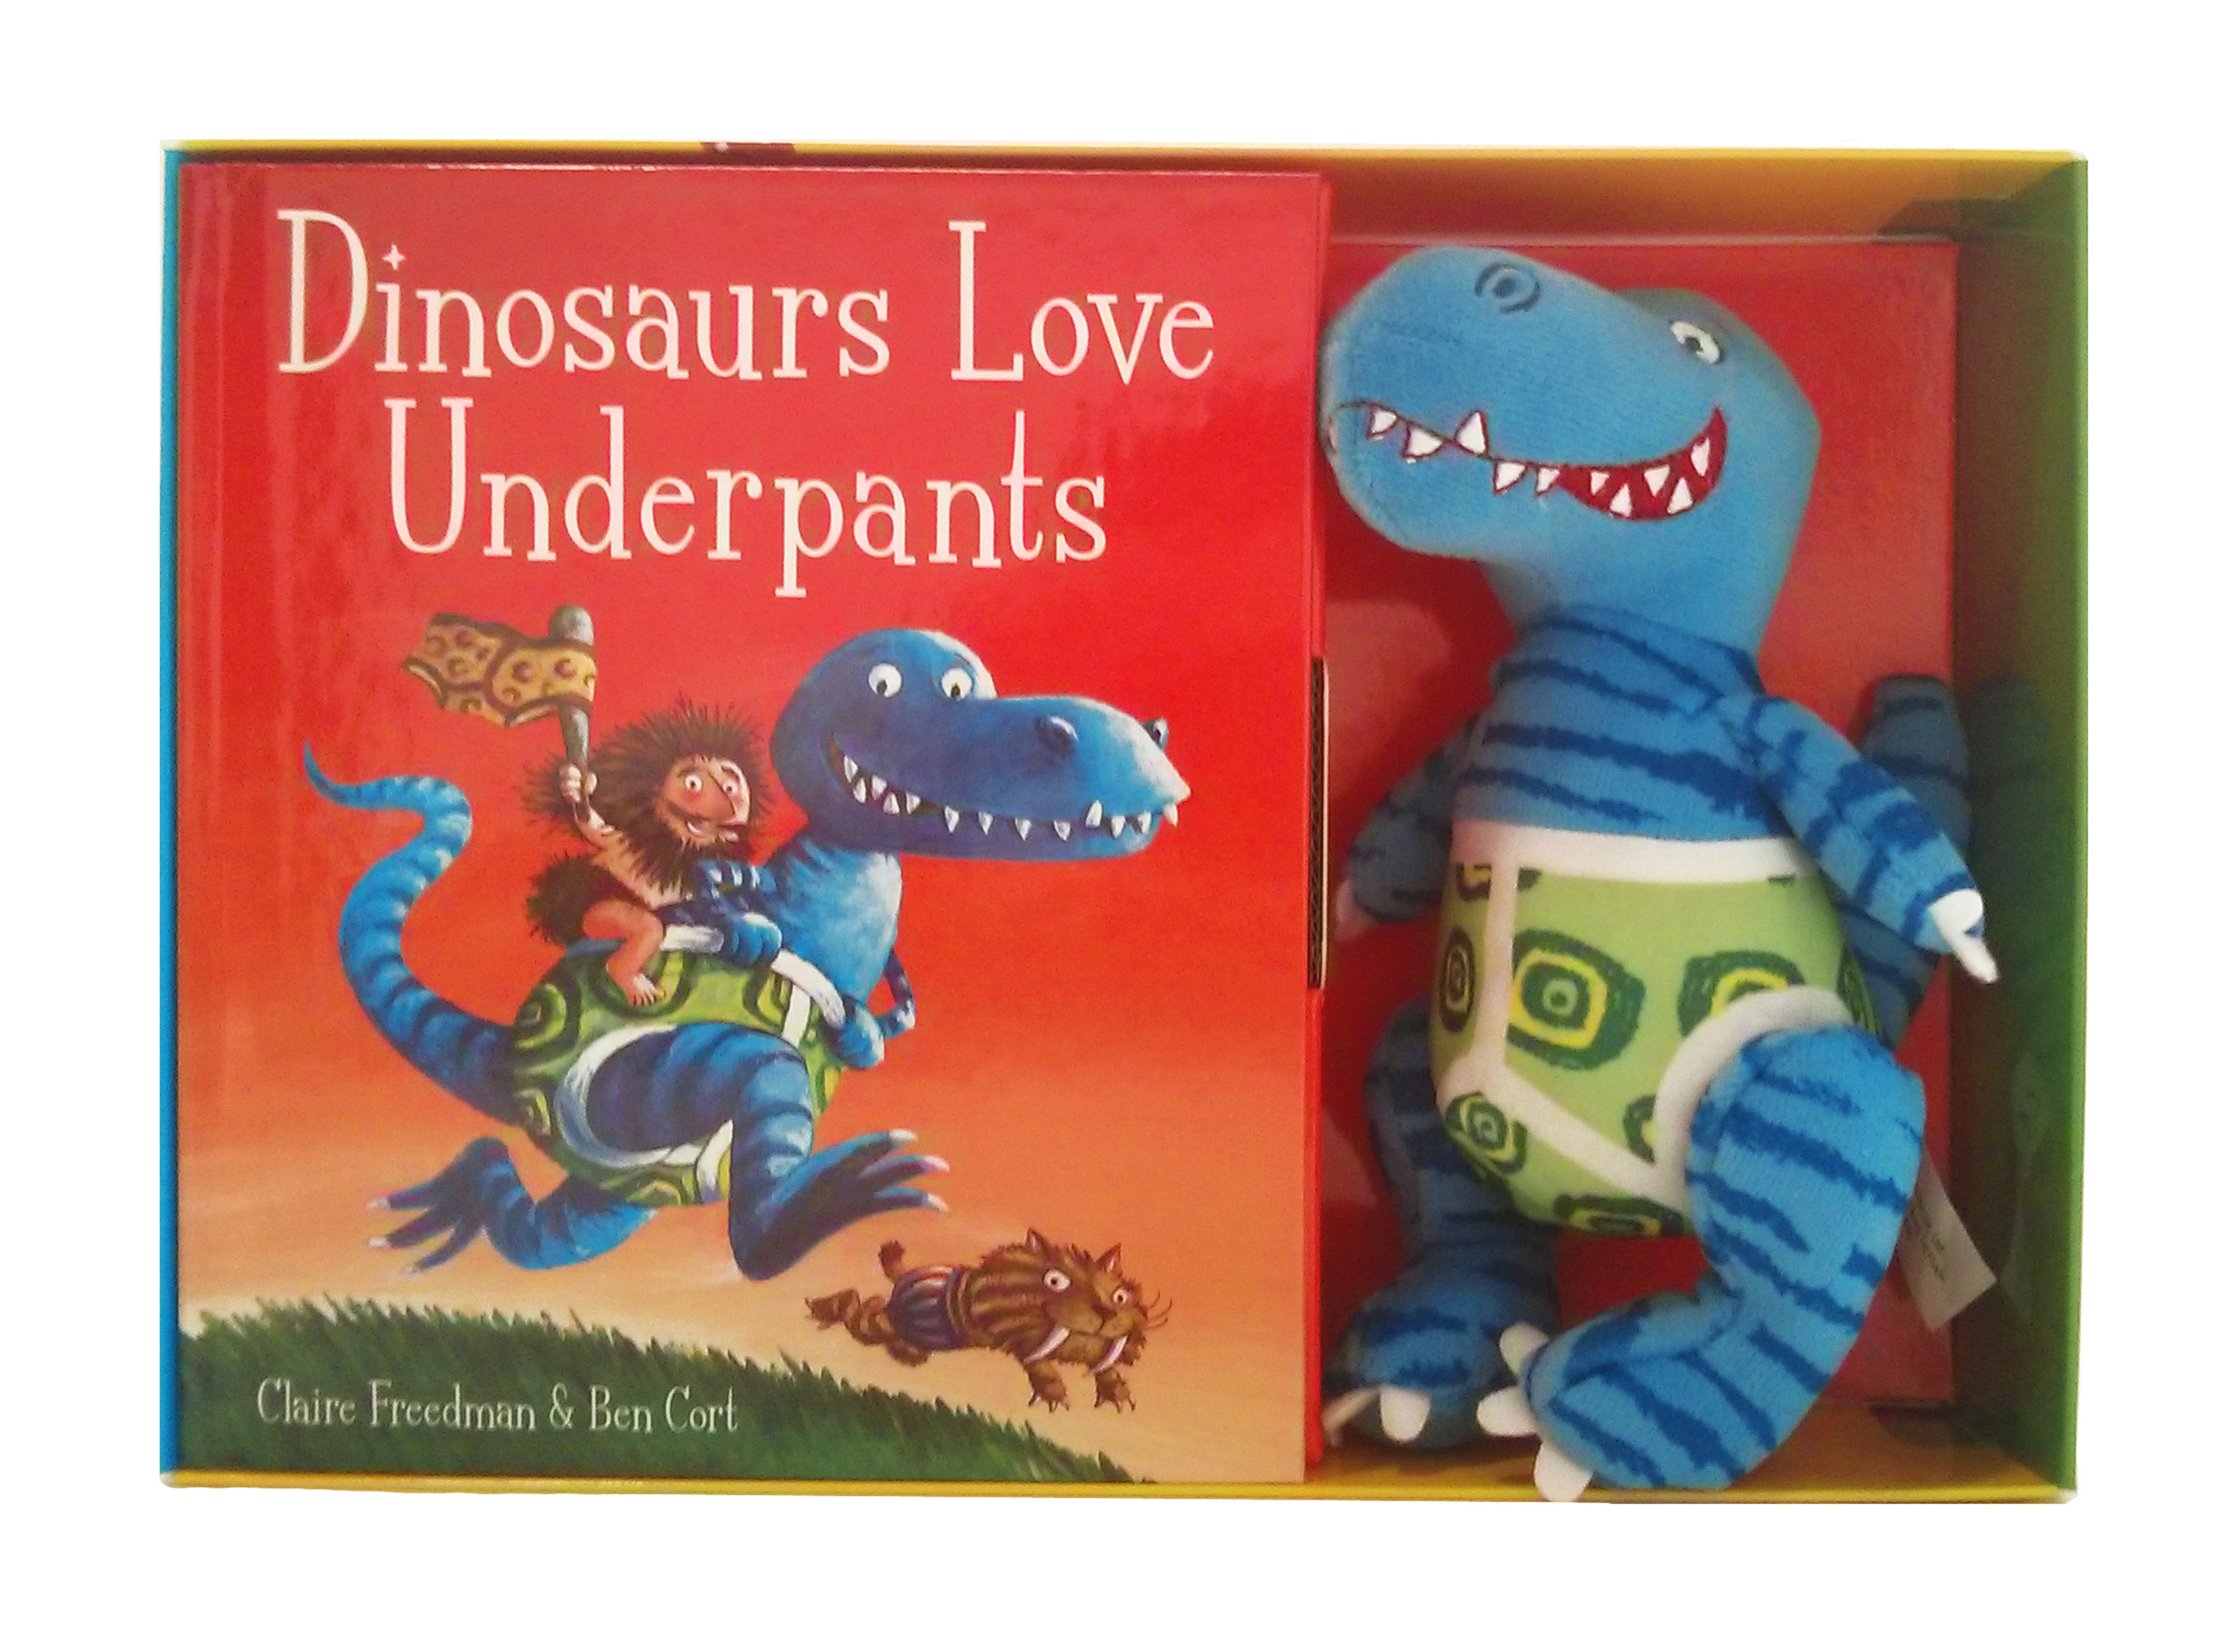 Dinosaurs Love Underpants Book And Toy By Claire Freedman Sticker Activity Books My Big Mighty Cover Image